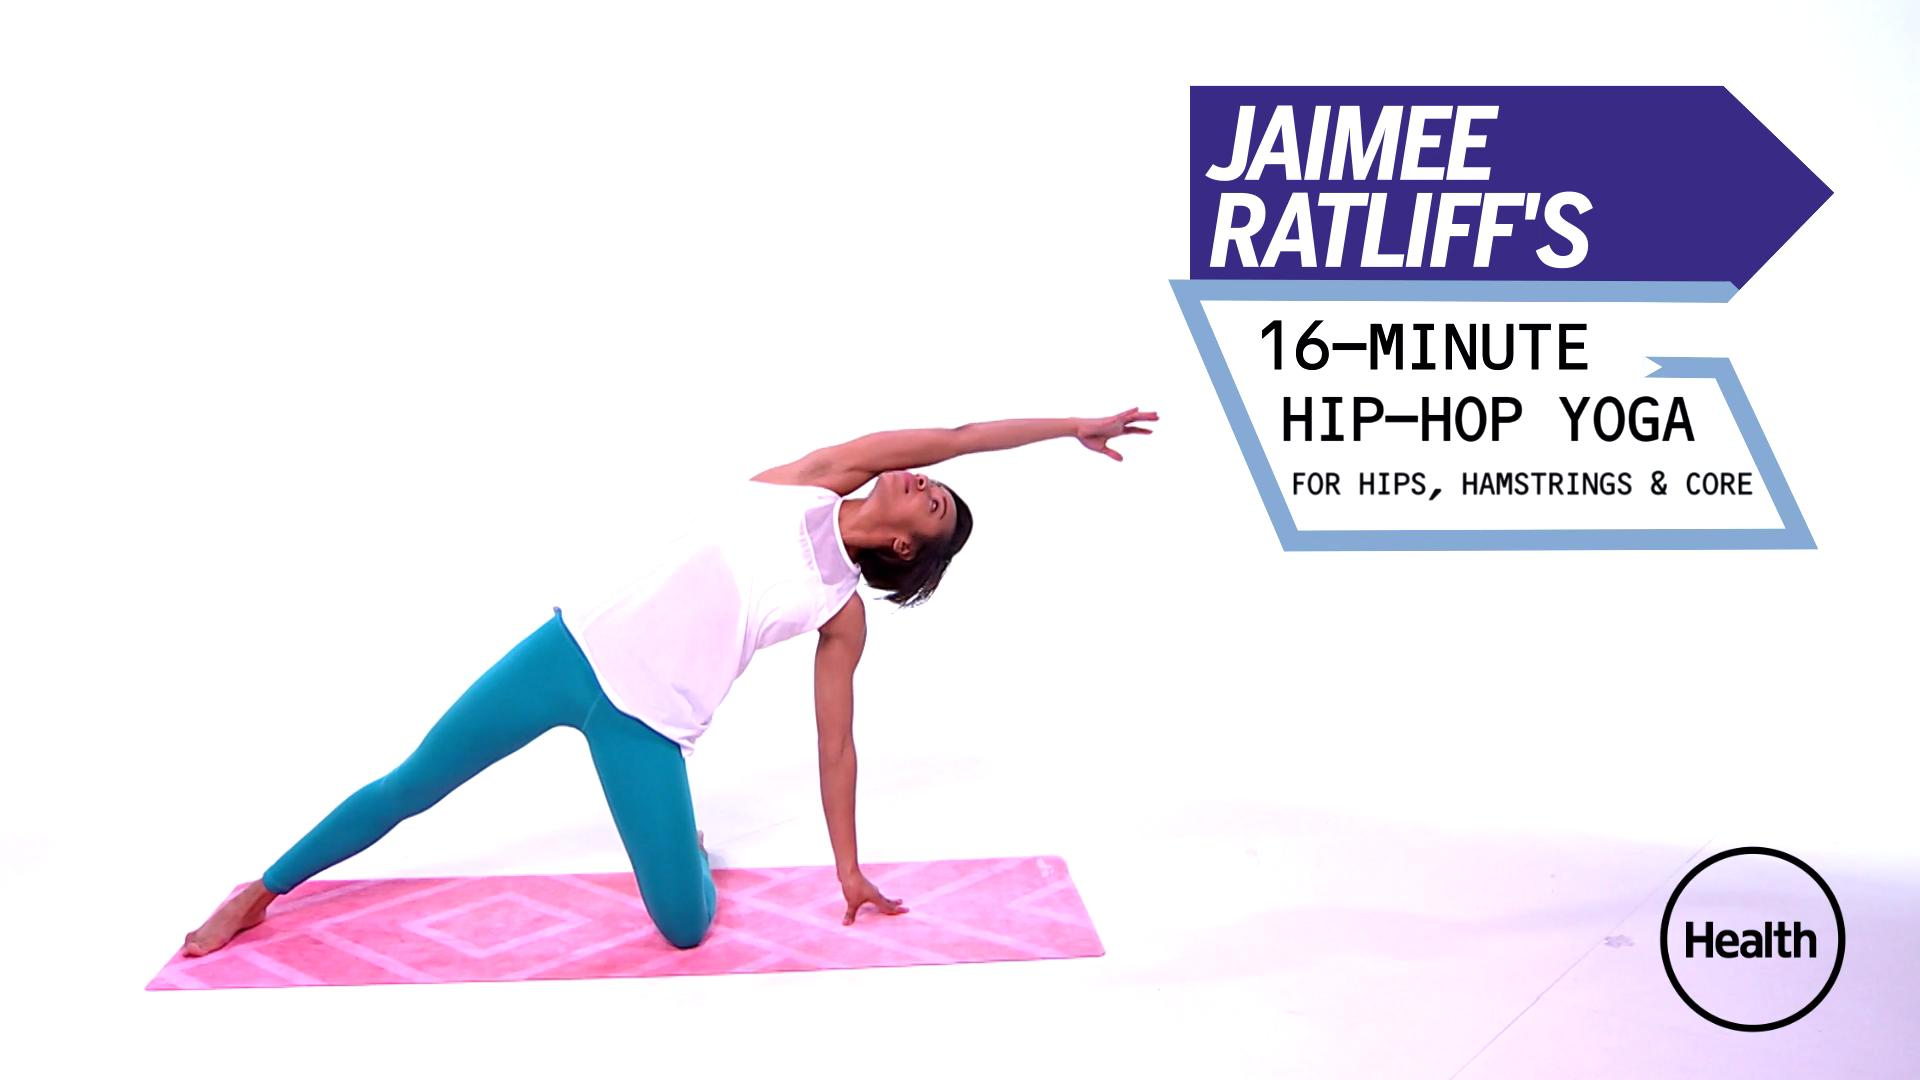 This 20-Minute Hip-Hop Yoga Routine Works Your Hips